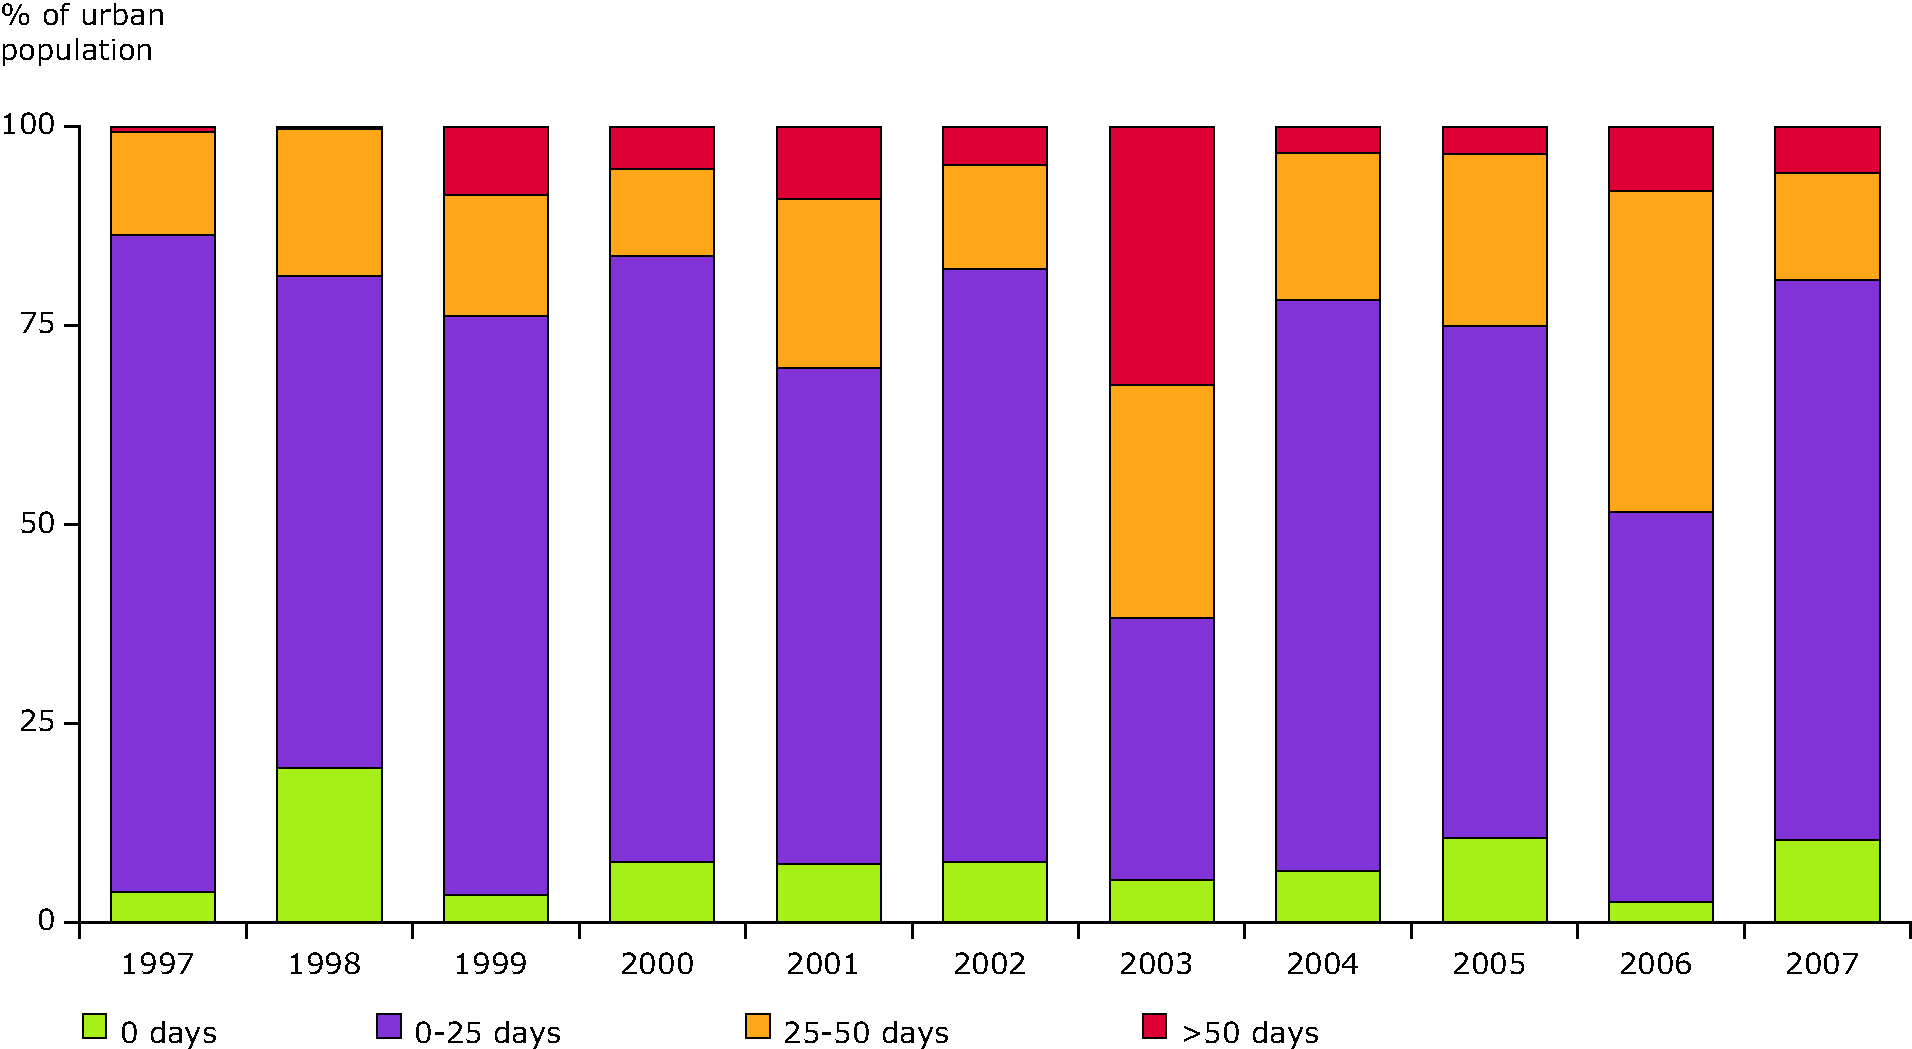 Percentage of population resident in urban areas potentially exposed to O3 concentration levels over the long-term objective for protection of human health, EEA member countries, 1997-2007